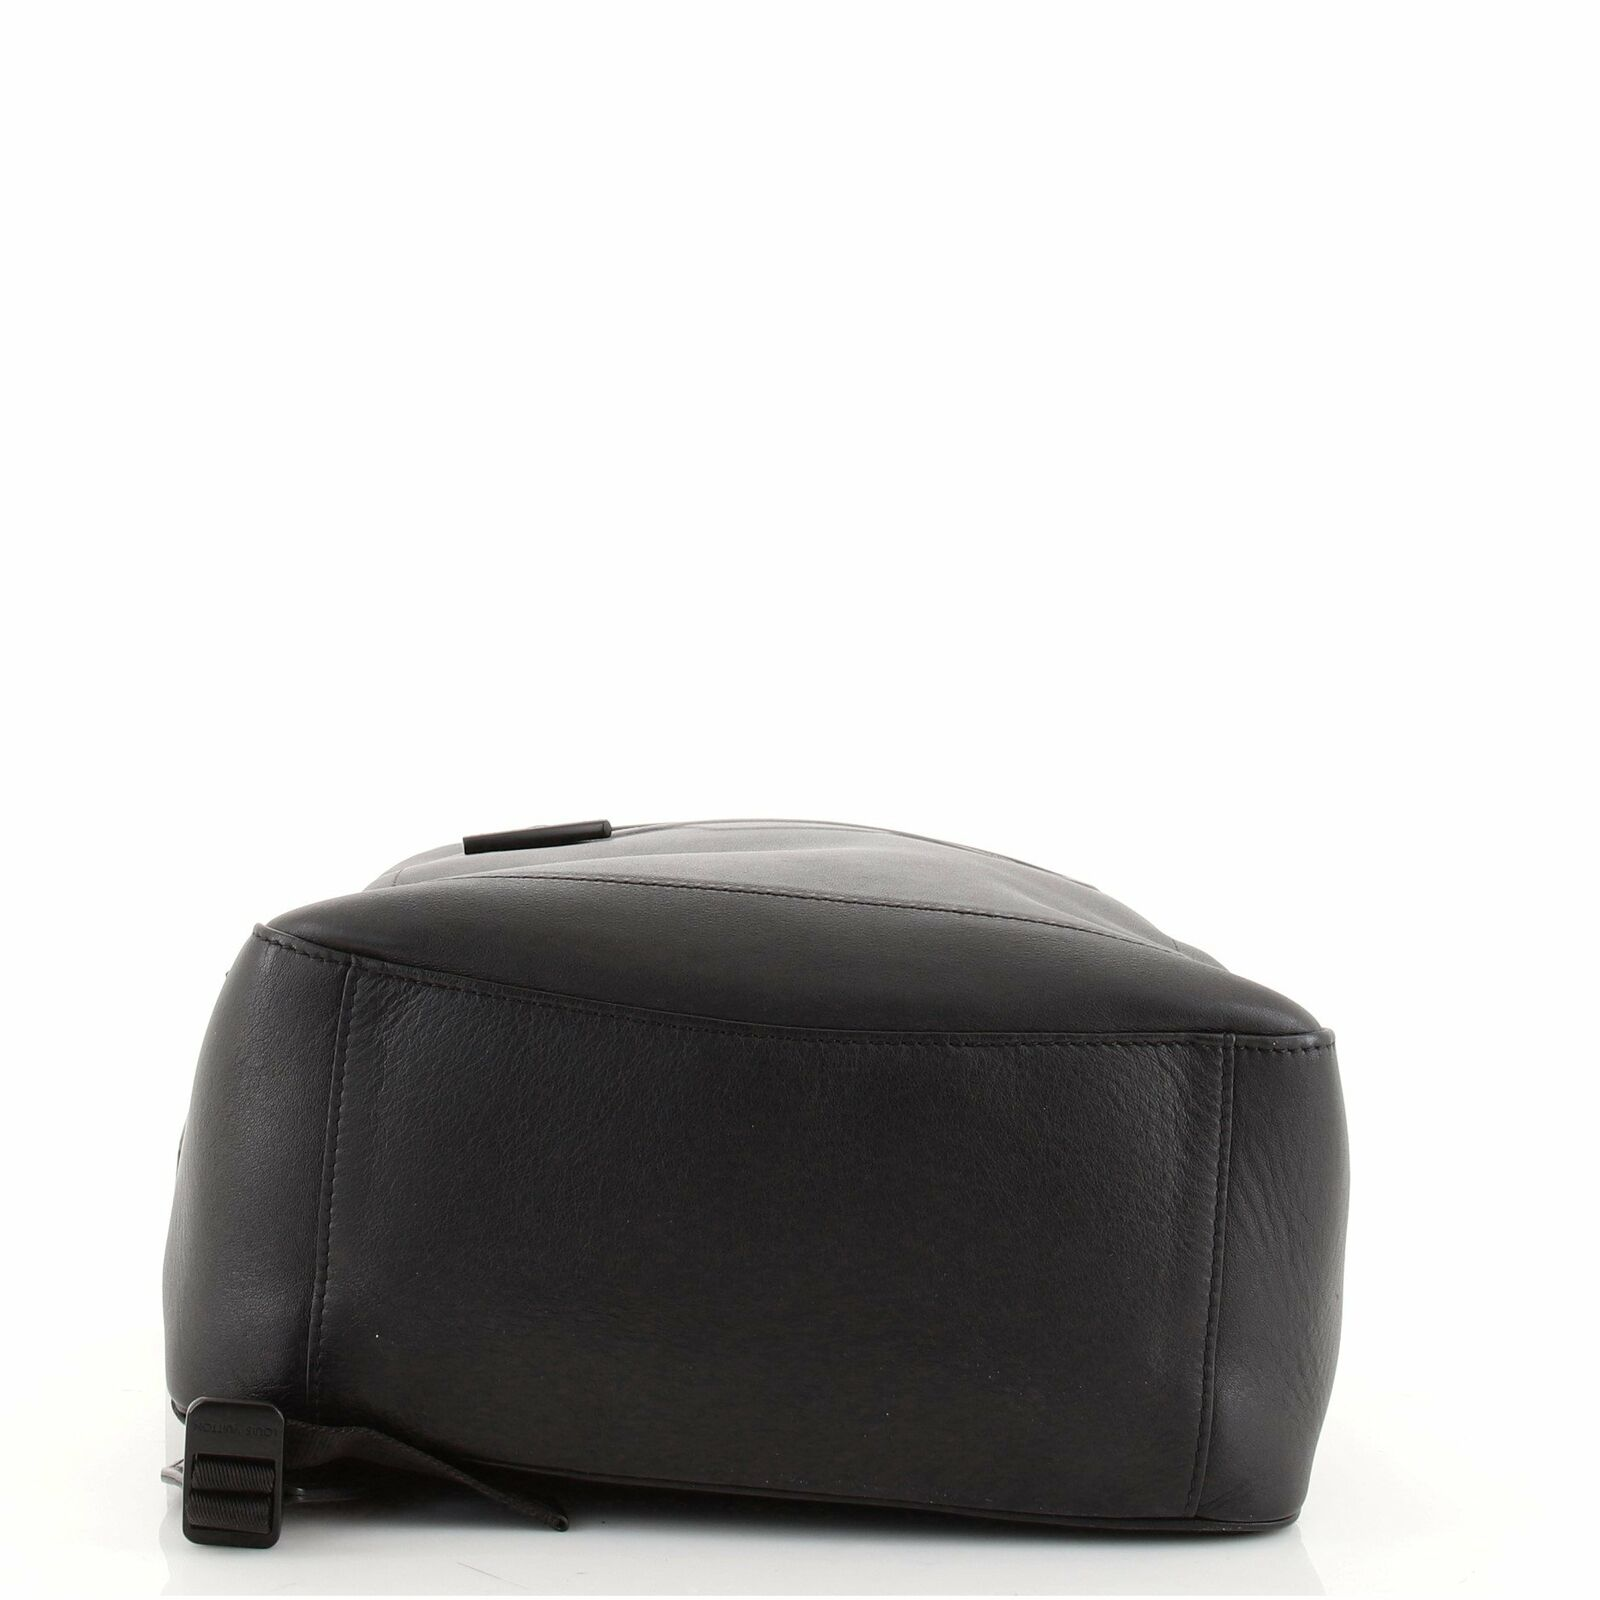 Louis Vuitton Backpack Dark Infinity Leather PM - image 4